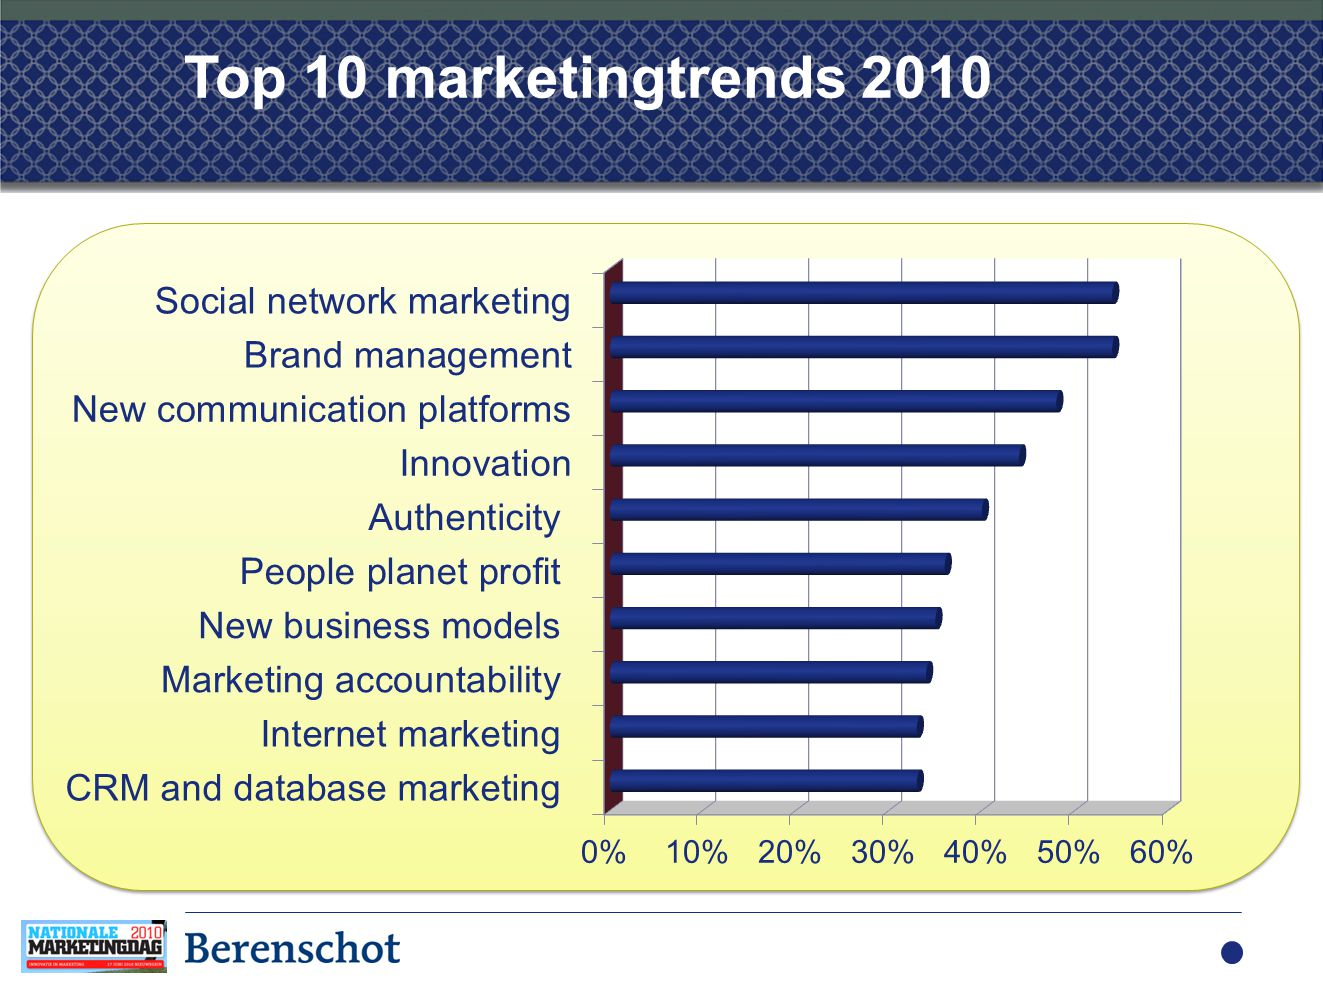 Top 10 marketingtrends 2010